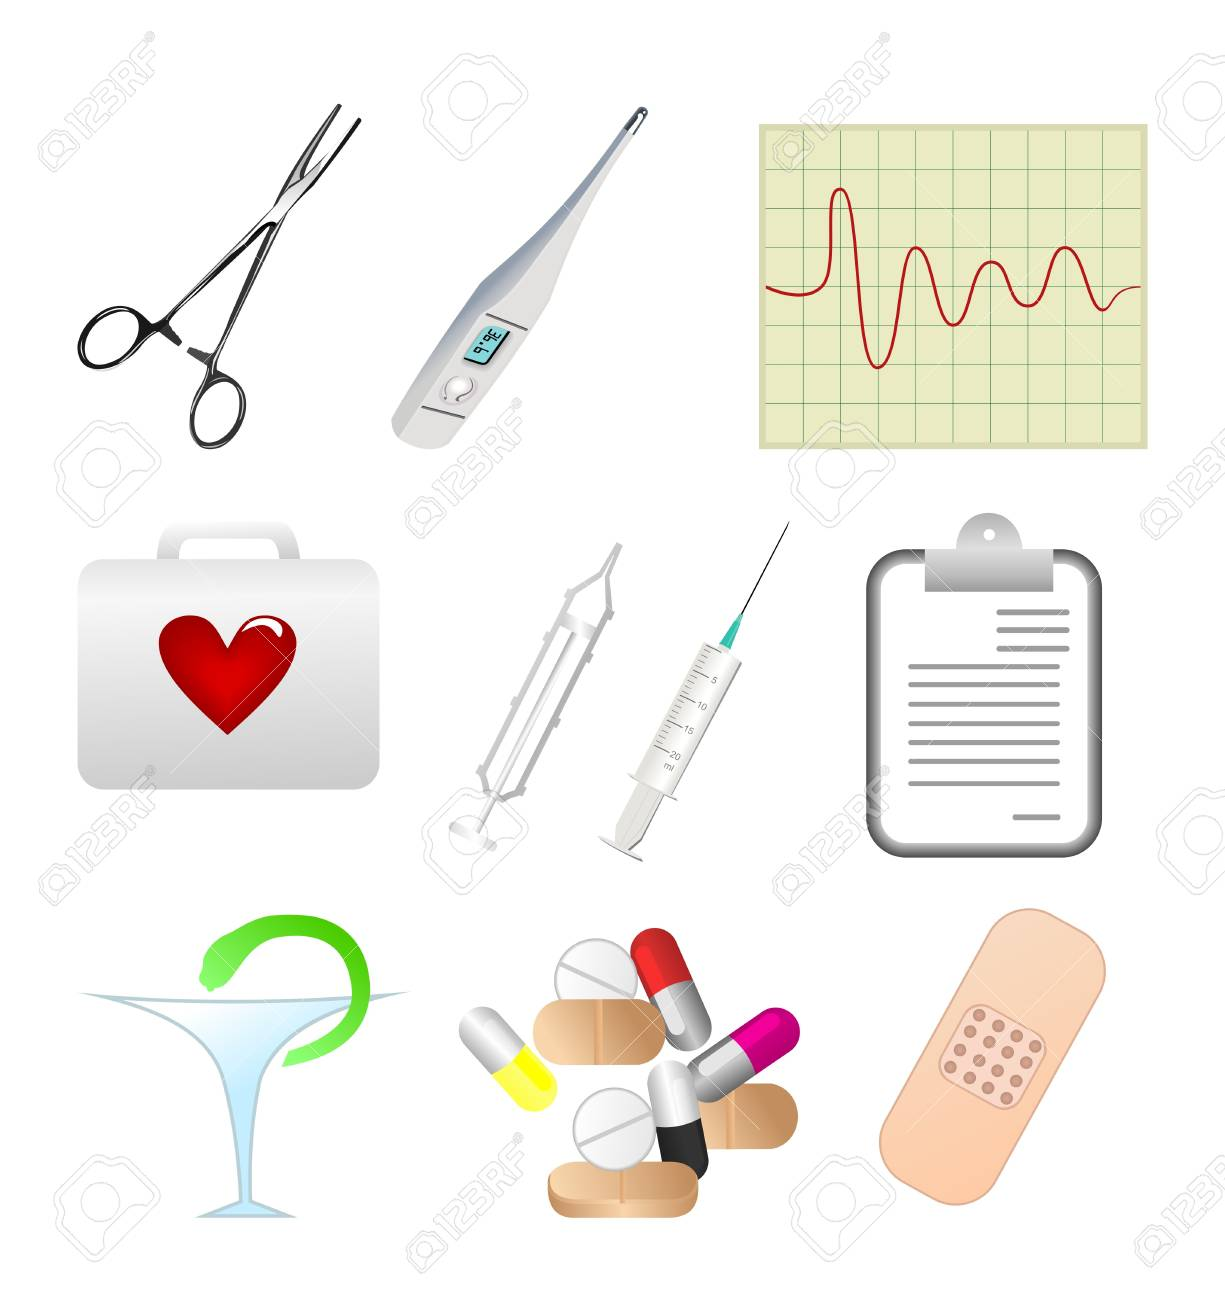 Collection of medical themed icons. Stock Vector - 7851960